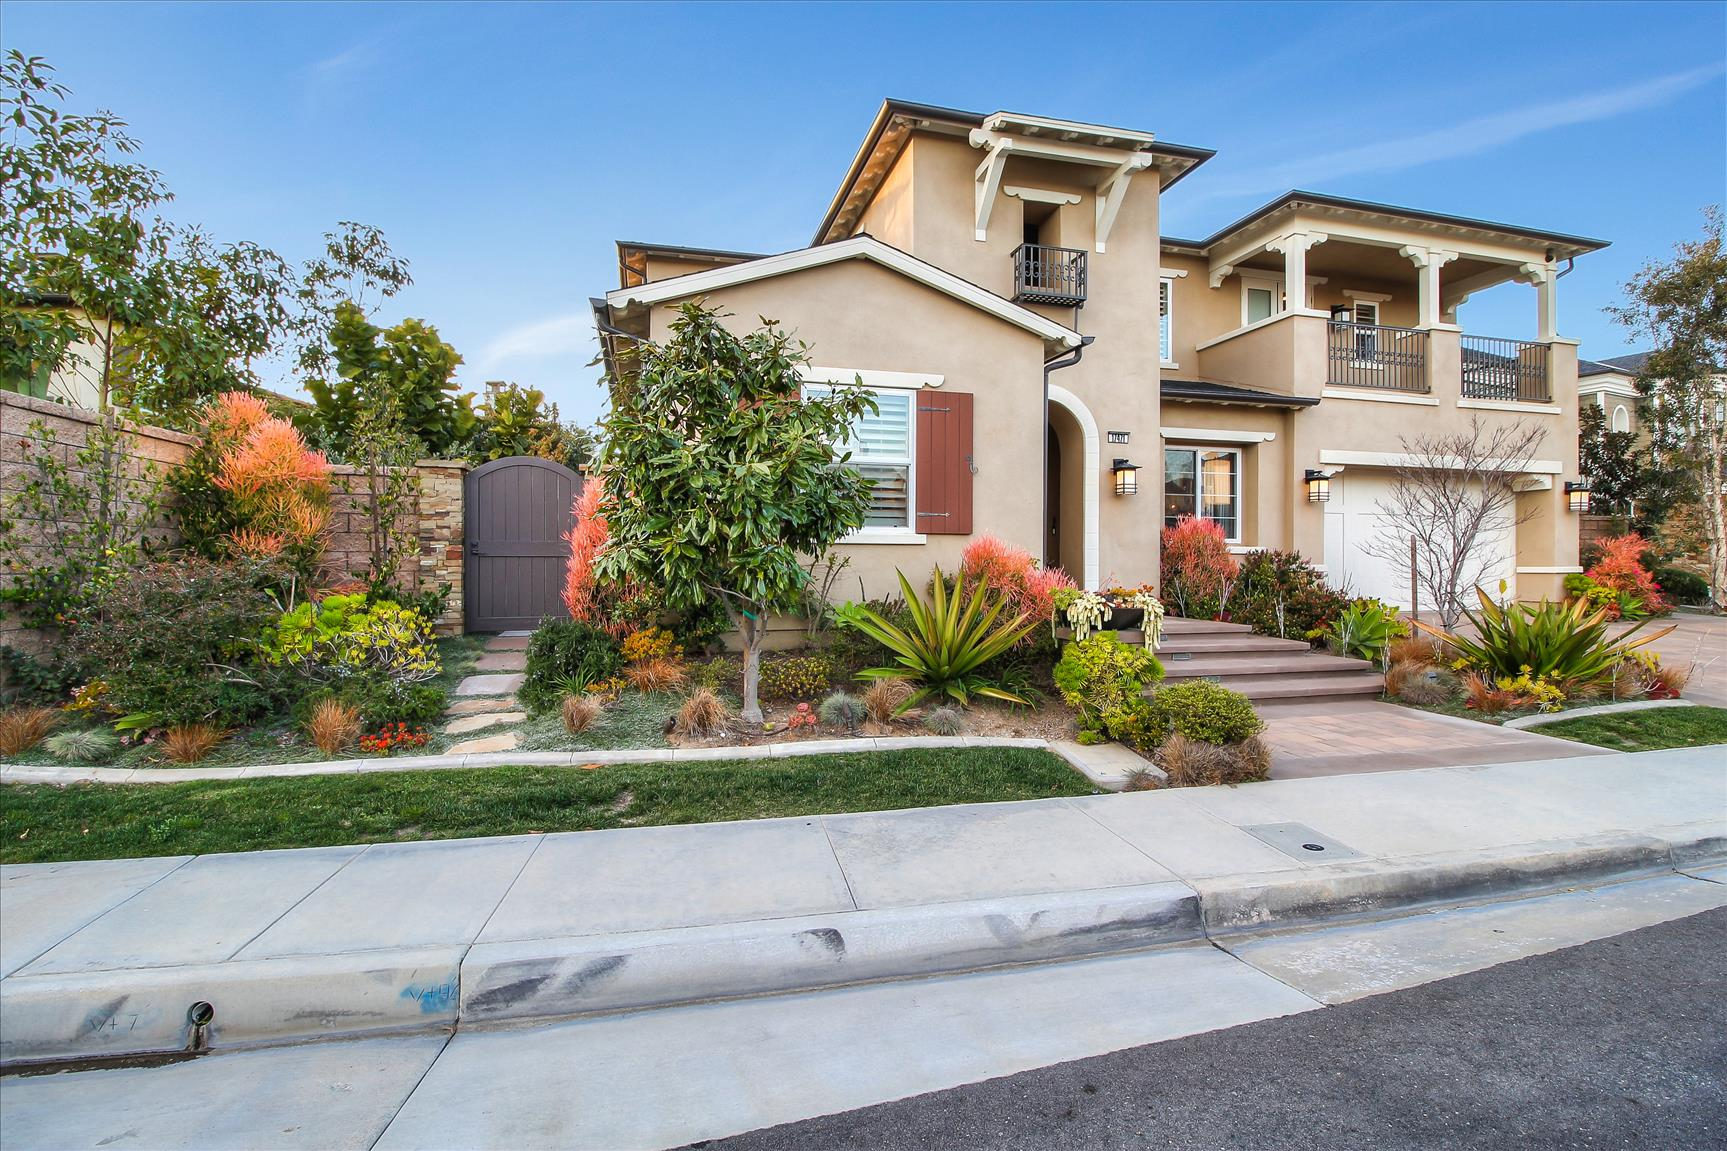 17471 Kennebunk Ln, Huntington Beach, CA  926491.jpg